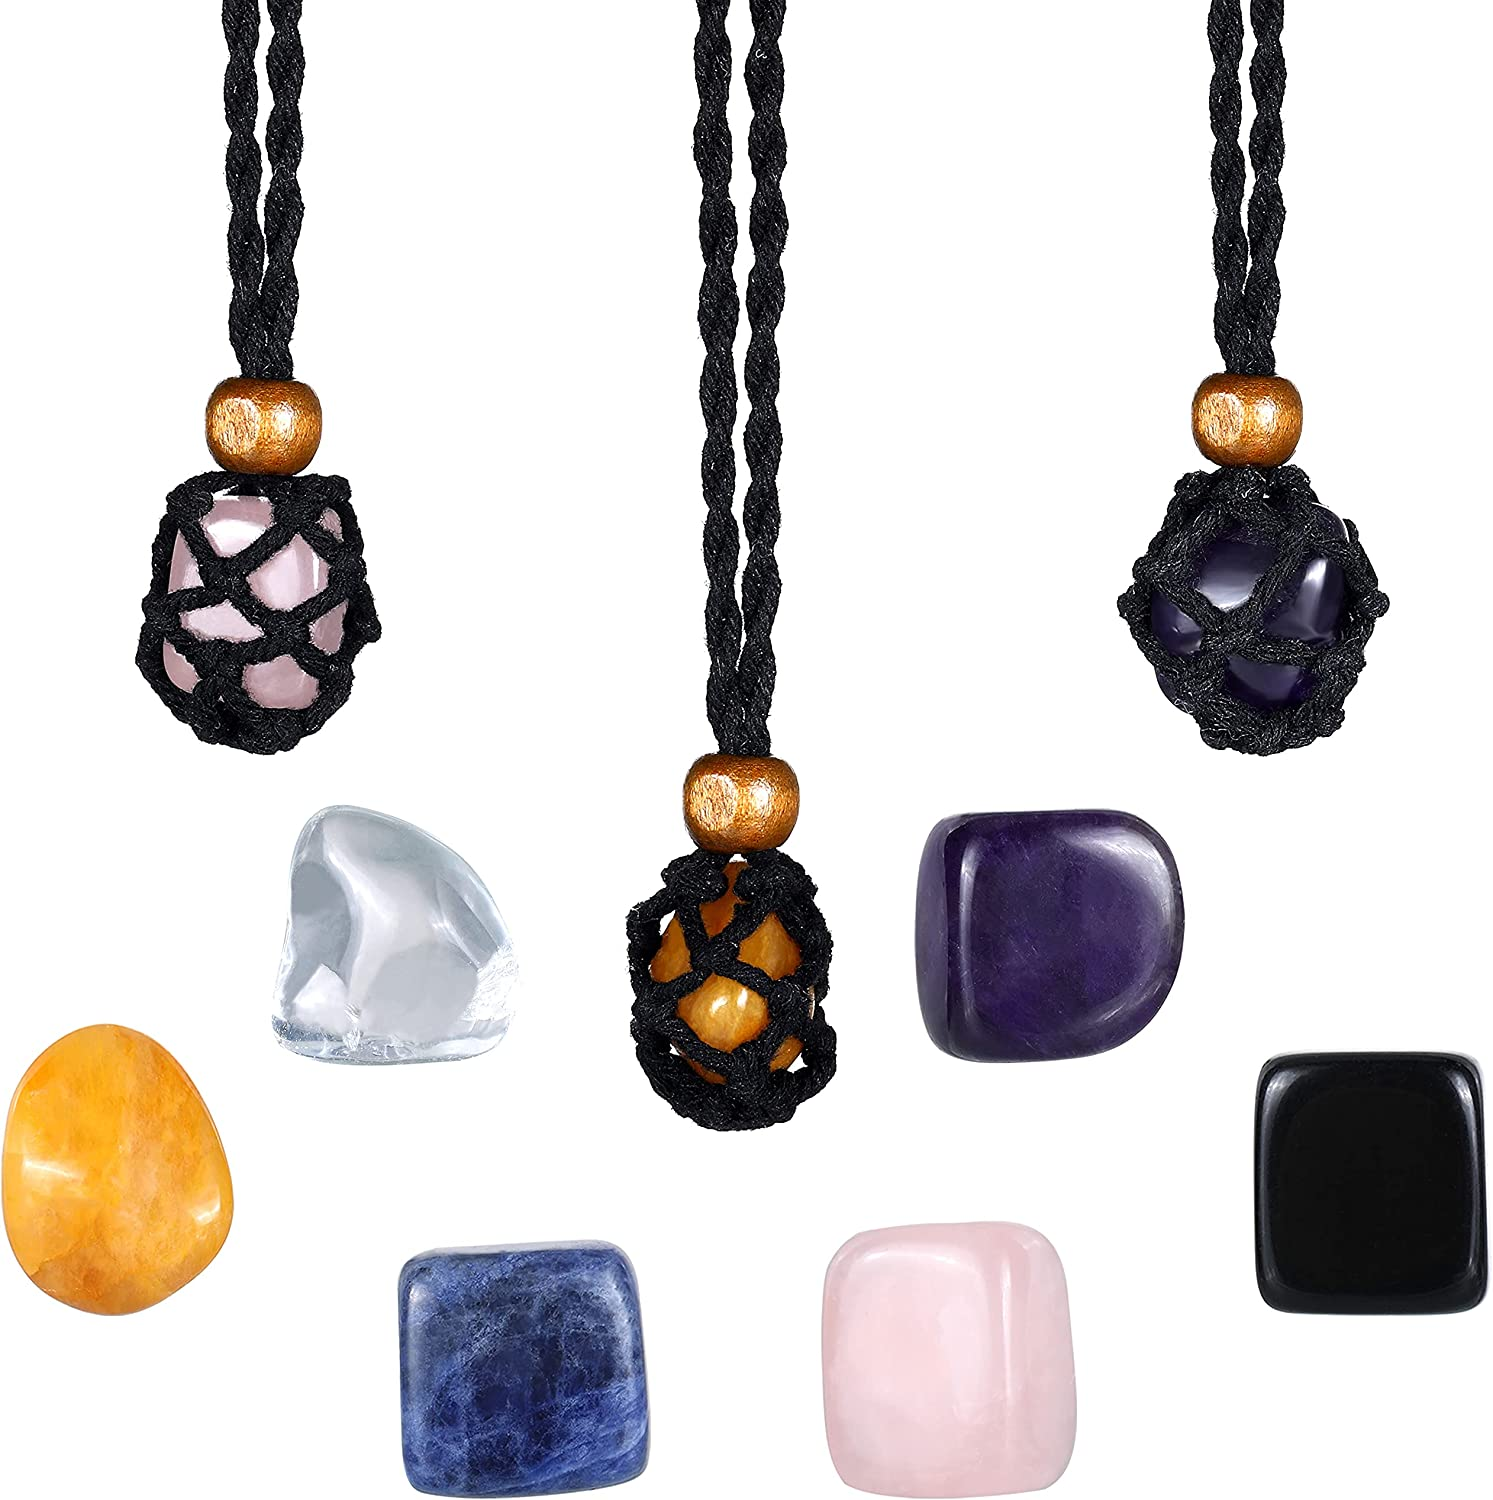 9 Pieces Necklace Cord Empty Stone Max 78% OFF Crystal 3 Set Holder Includes Max 51% OFF